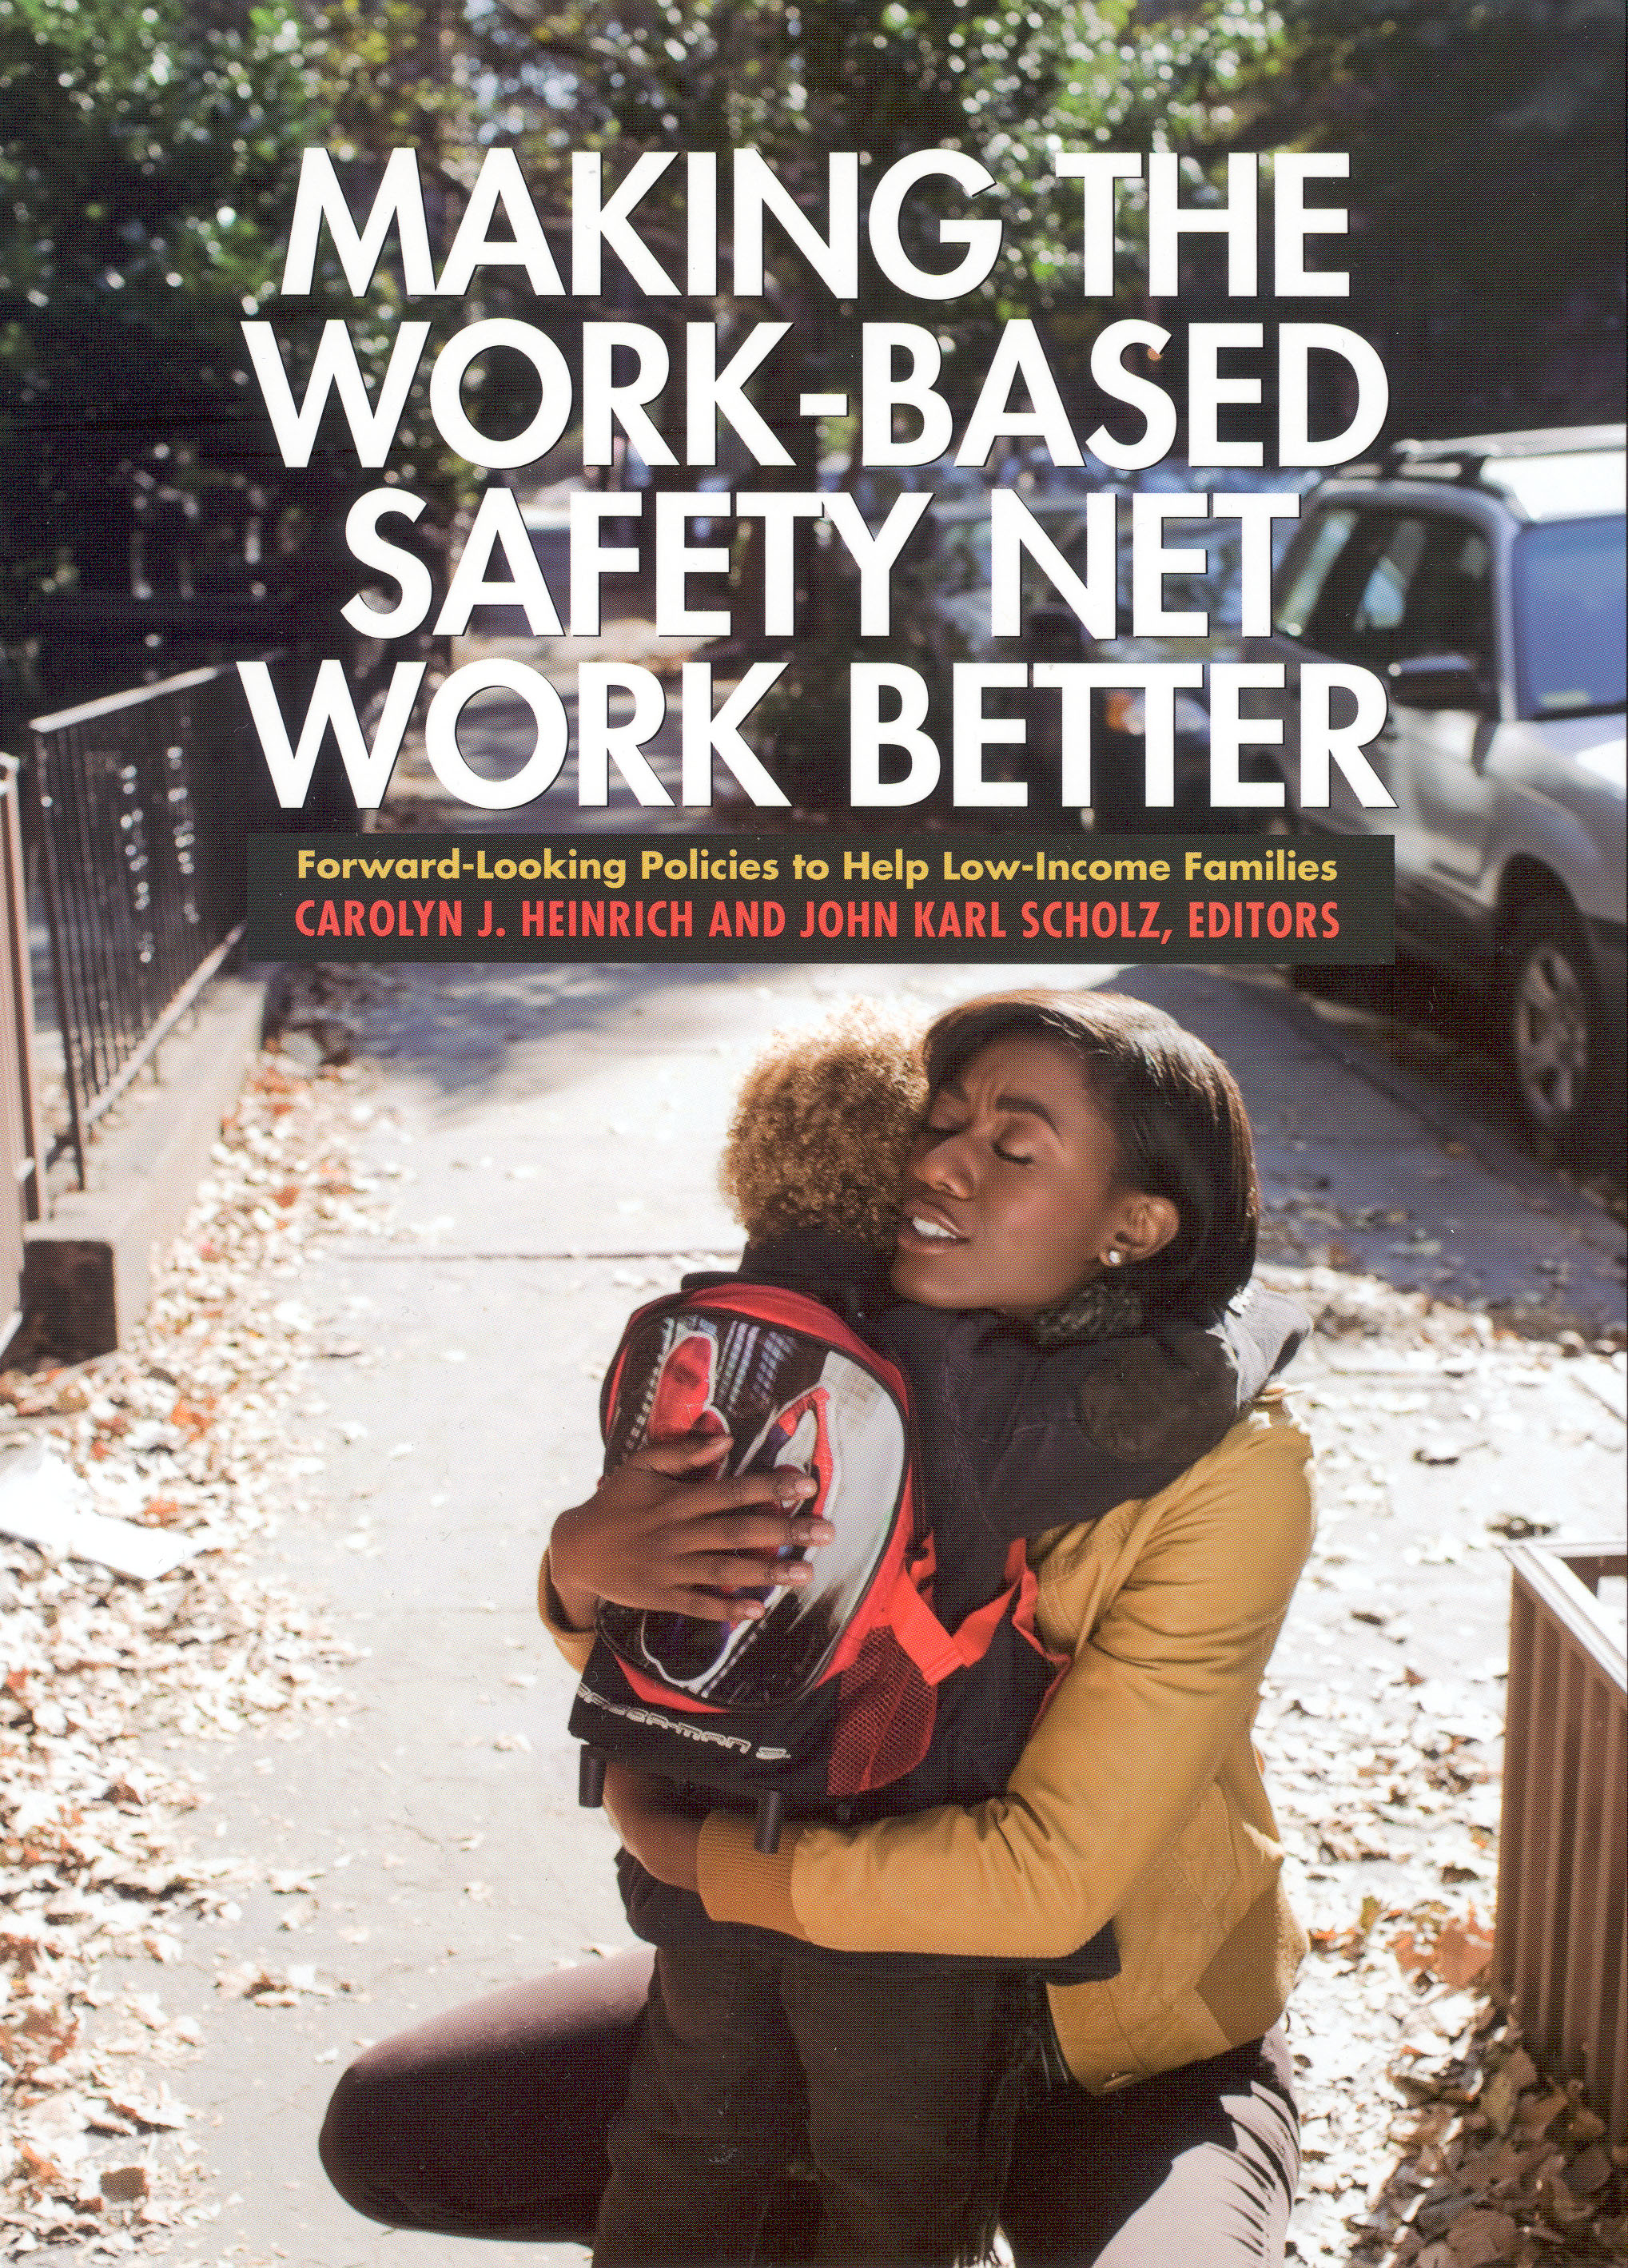 Making the Work-Based Safety Net Work Better